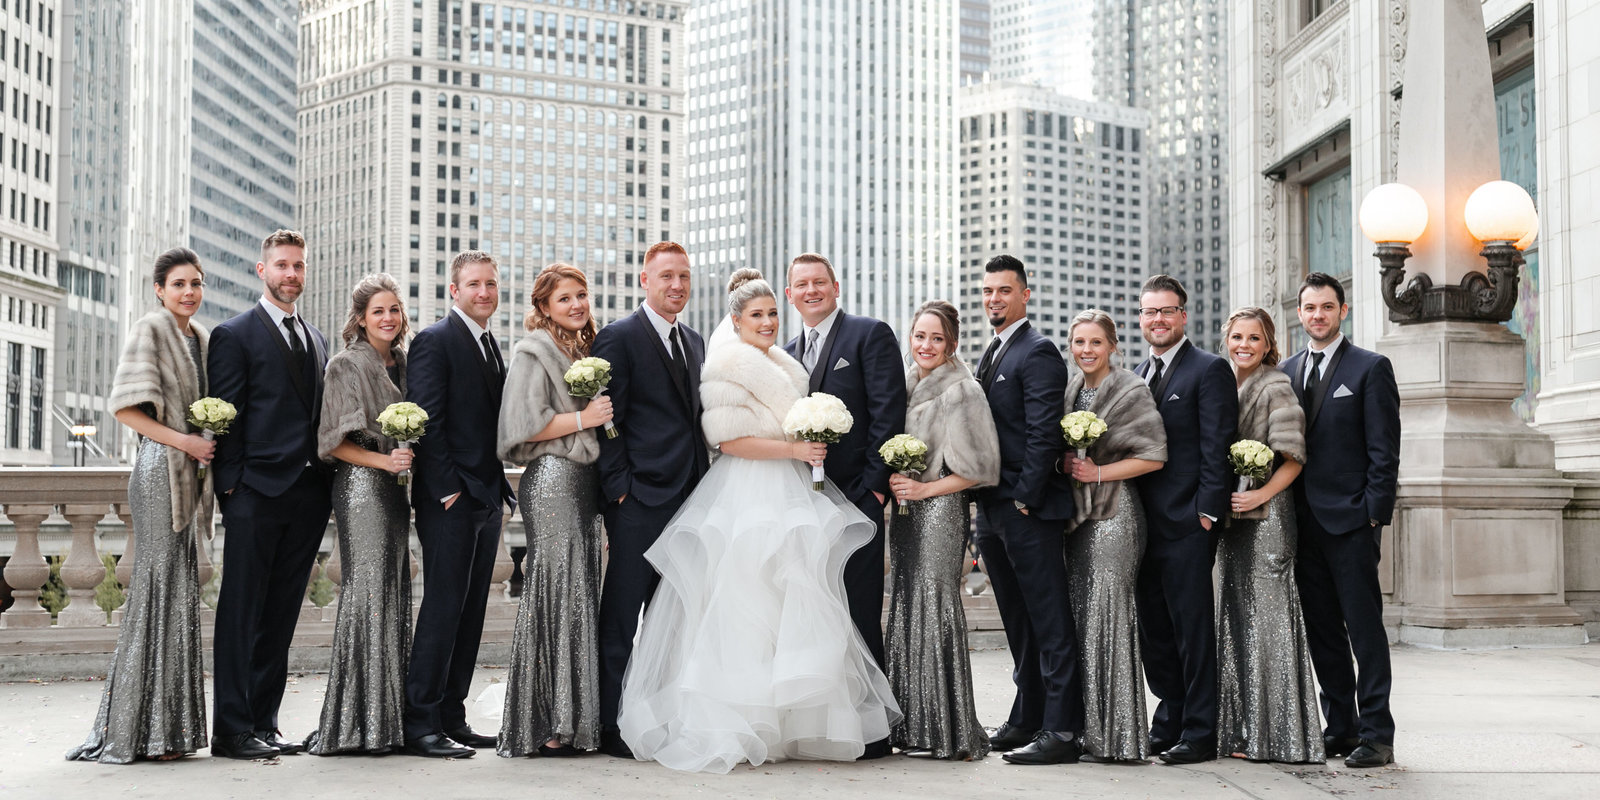 Chicago Wedding Photographer | Janet D Photography | Bridal Portraits